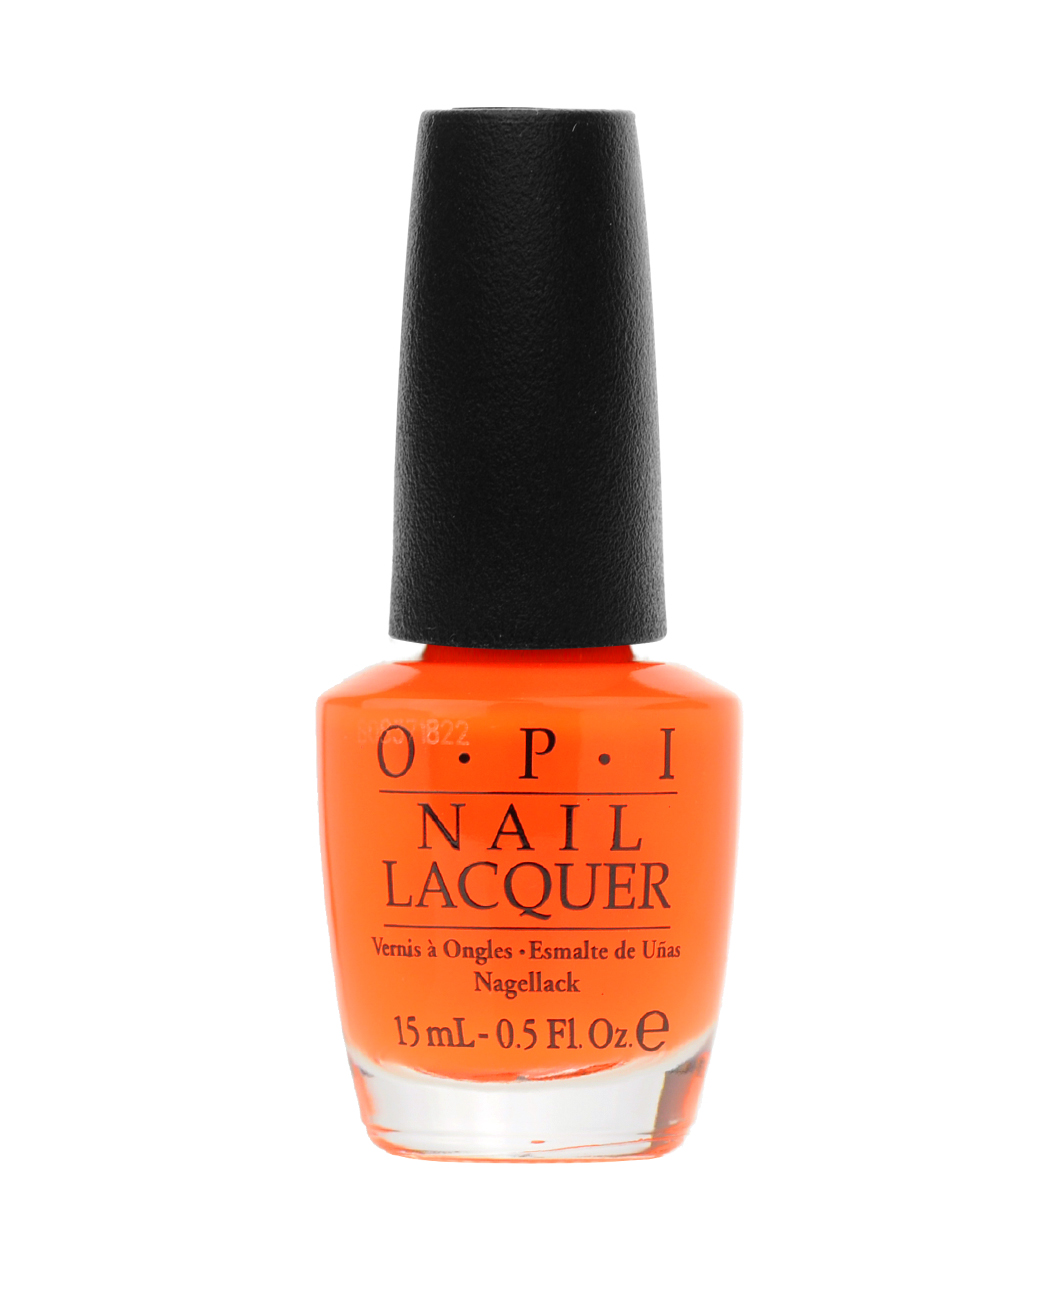 OPI Nail Lacquer, OPI Tru Neon Collection, 0.5 Fluid Ounce - Pants ...